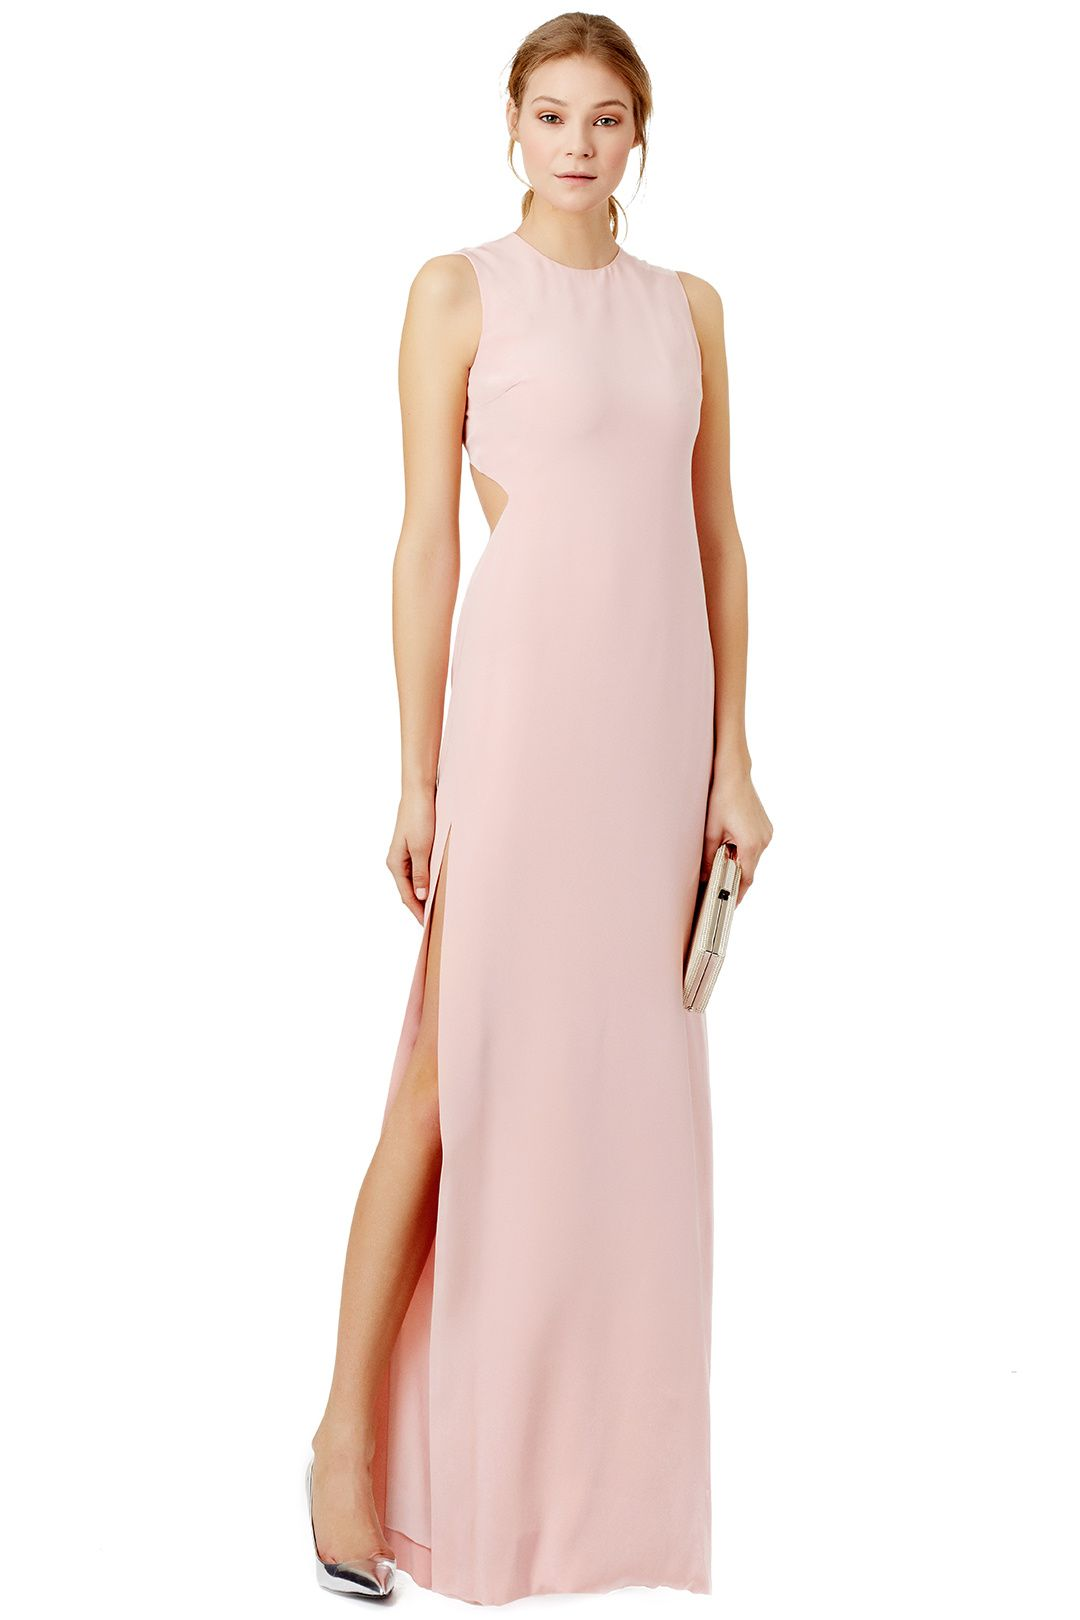 Parisienne gown halston heritage pink gowns and gowns light pink gown with sleek back cut outs parisienne gown by halston heritage ombrellifo Images